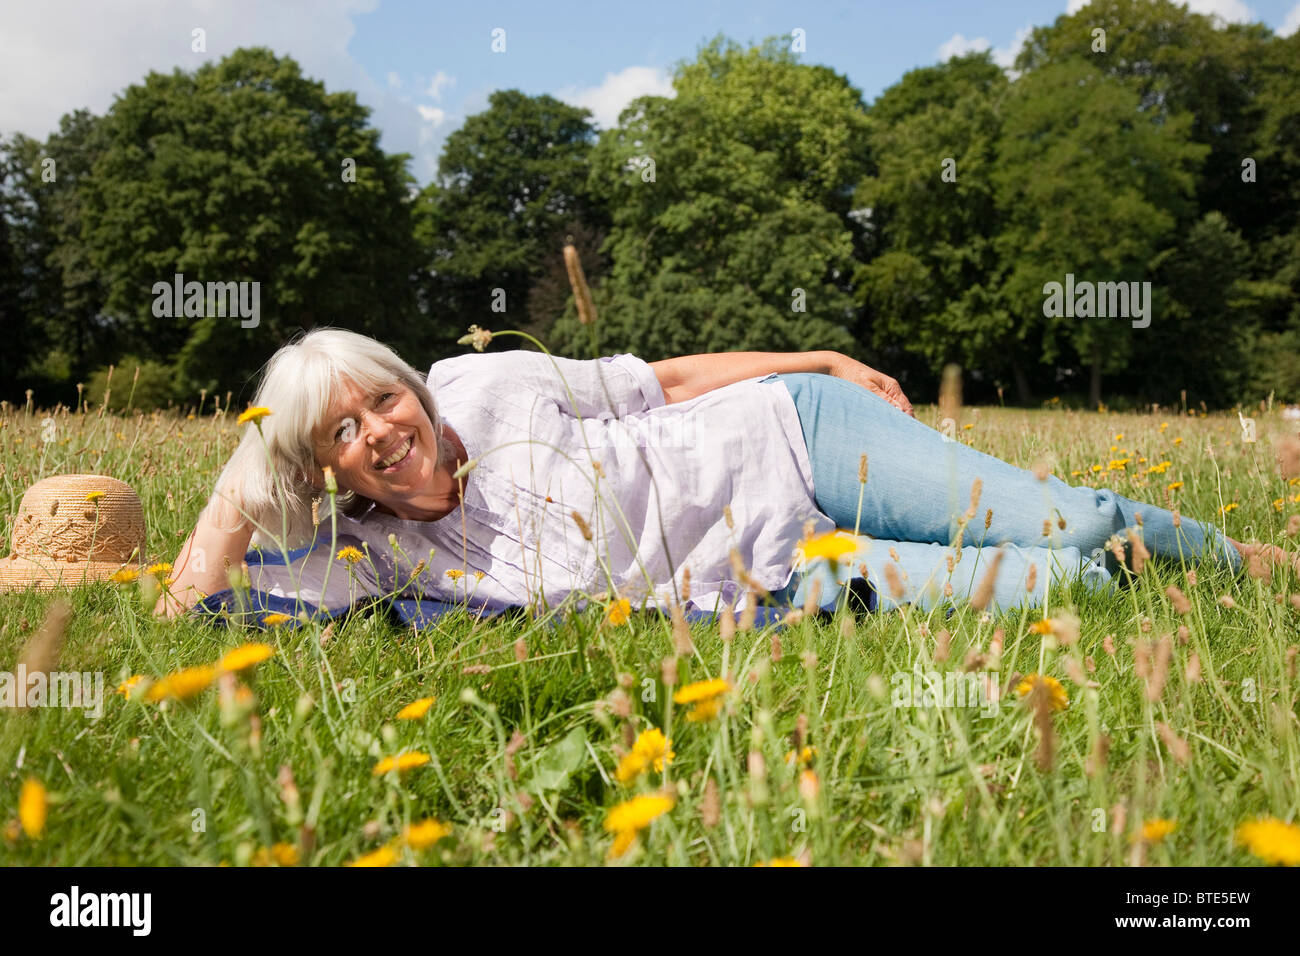 Woman lying in the grass - Stock Image